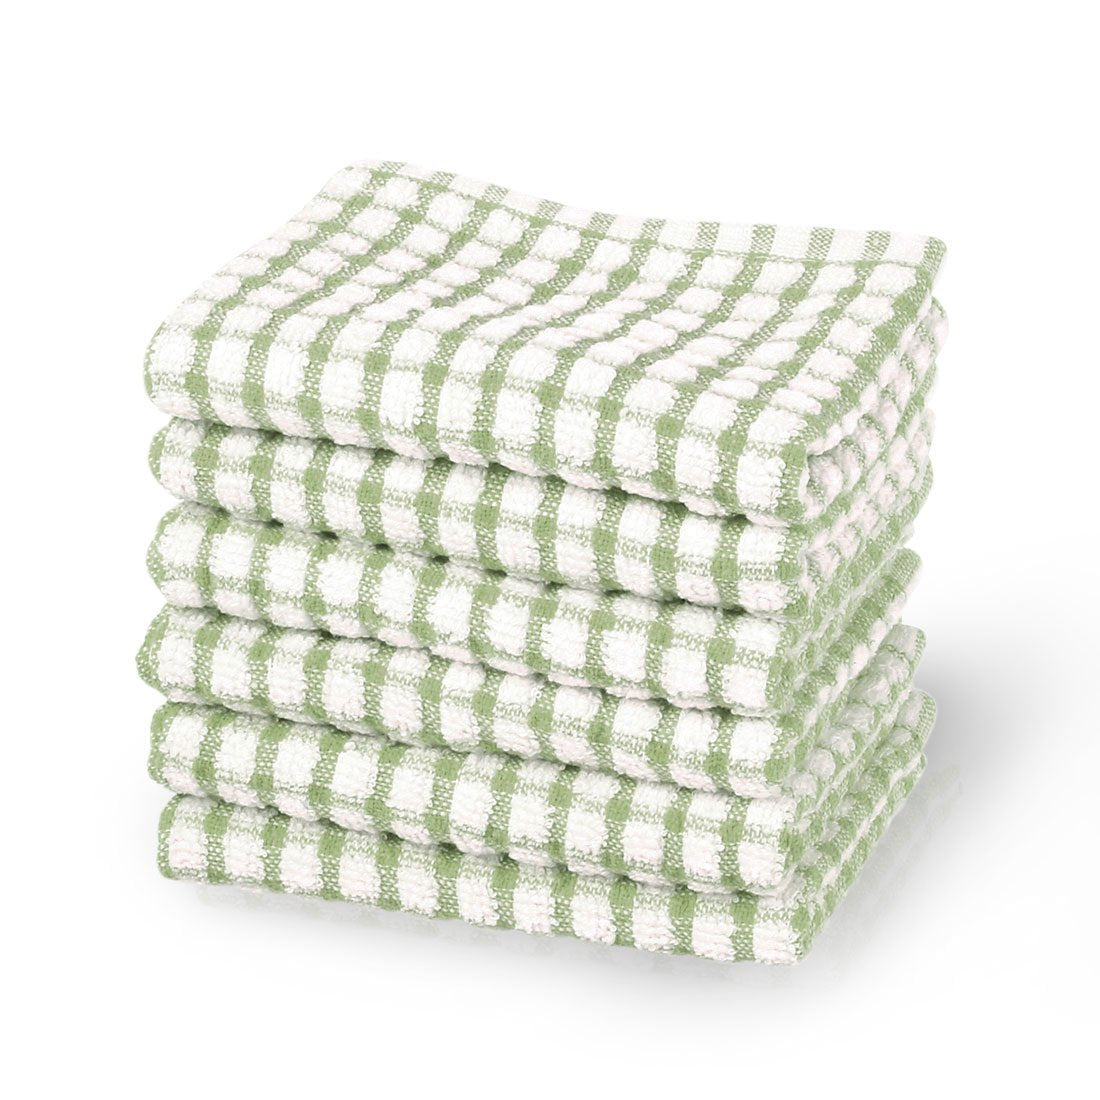 uxcell Cotton Terry Kitchen Towel Dish Cloth, Cleaning Drying Hotel Wash Cloth, 15 x 10.5 inches, Pack of 6, Green